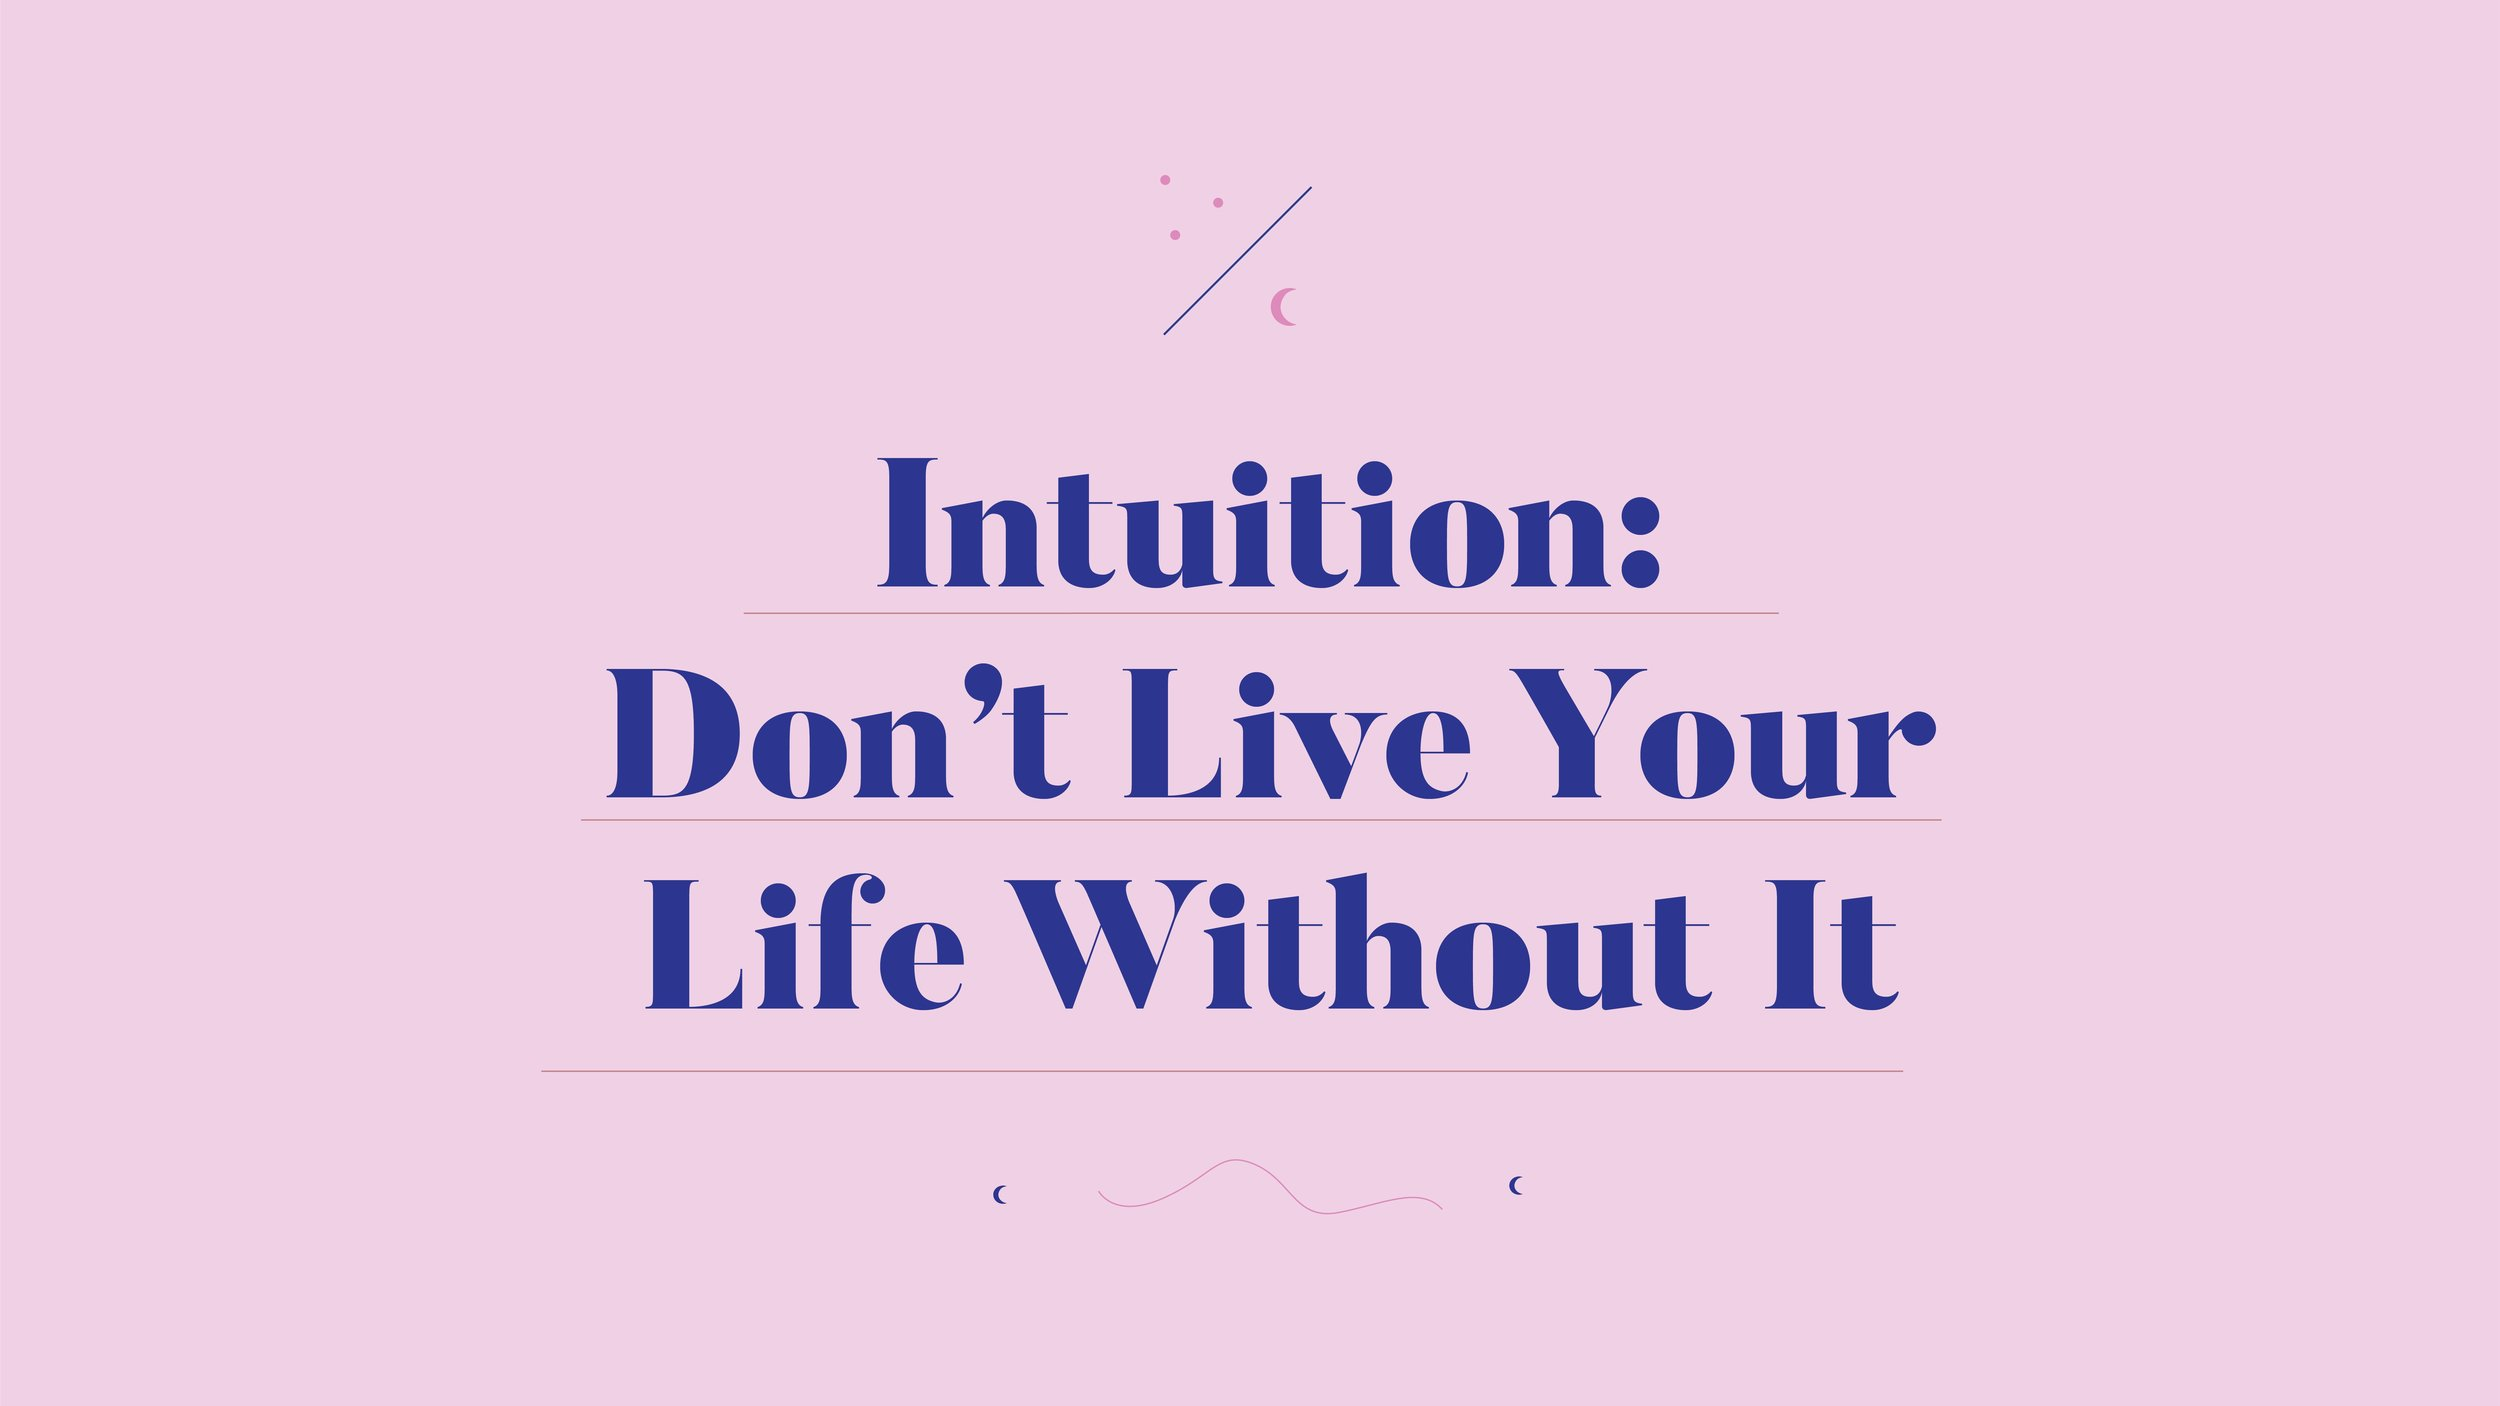 Intuition-Dont-Live-Life-Without-It-1.jpg